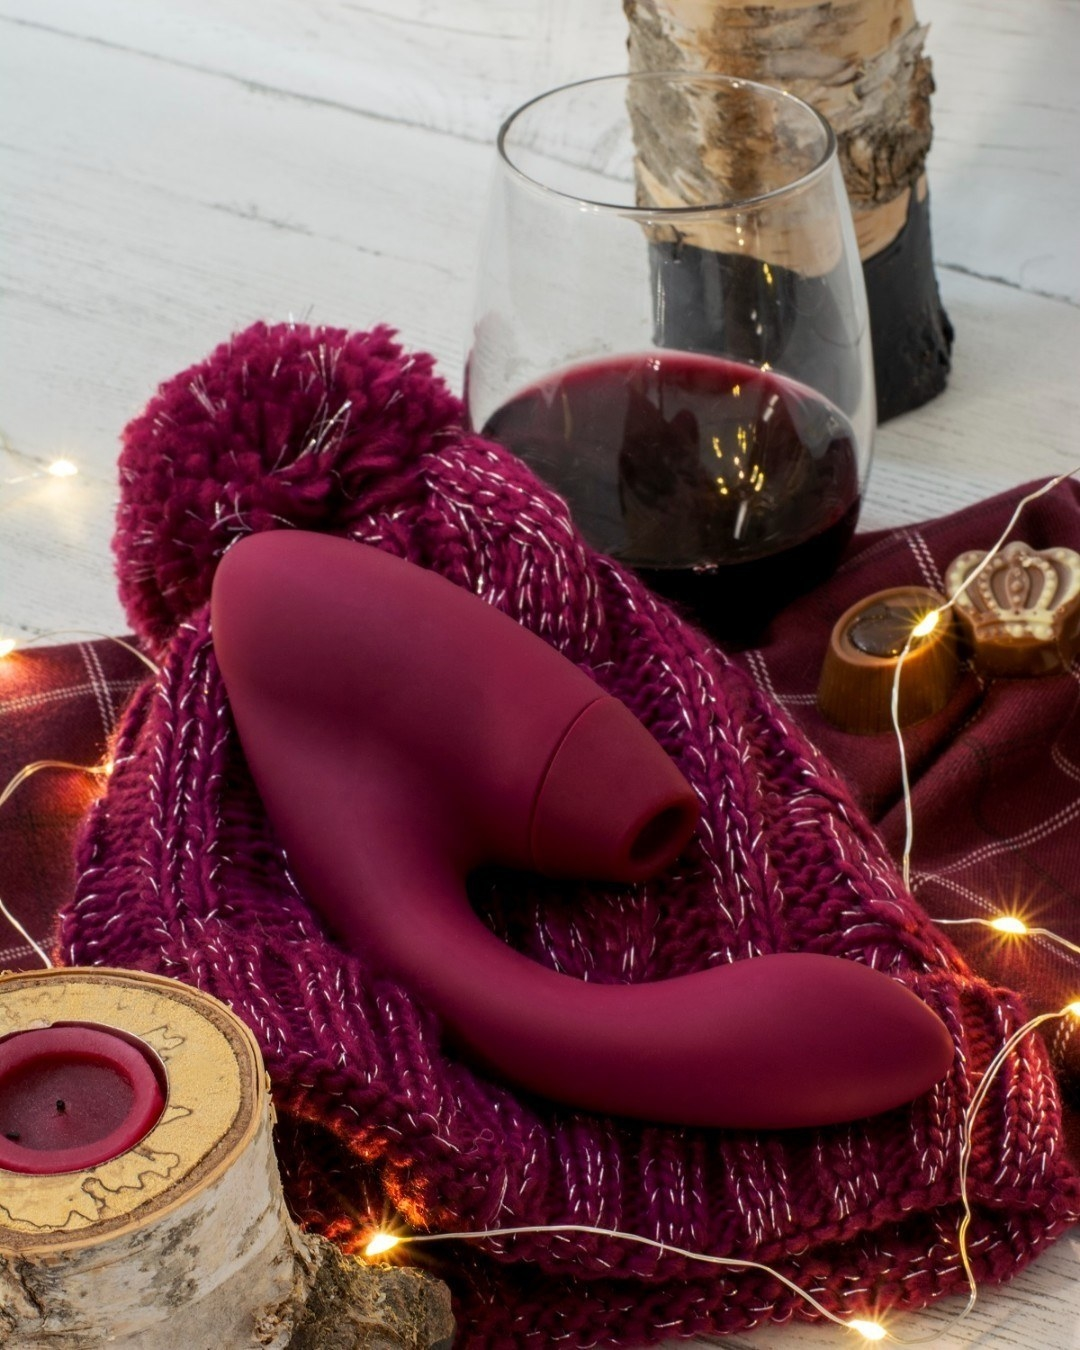 the womanizer duo atop a burgundy knit beanie hat surrounded by twinkle lights and a glass of red wine